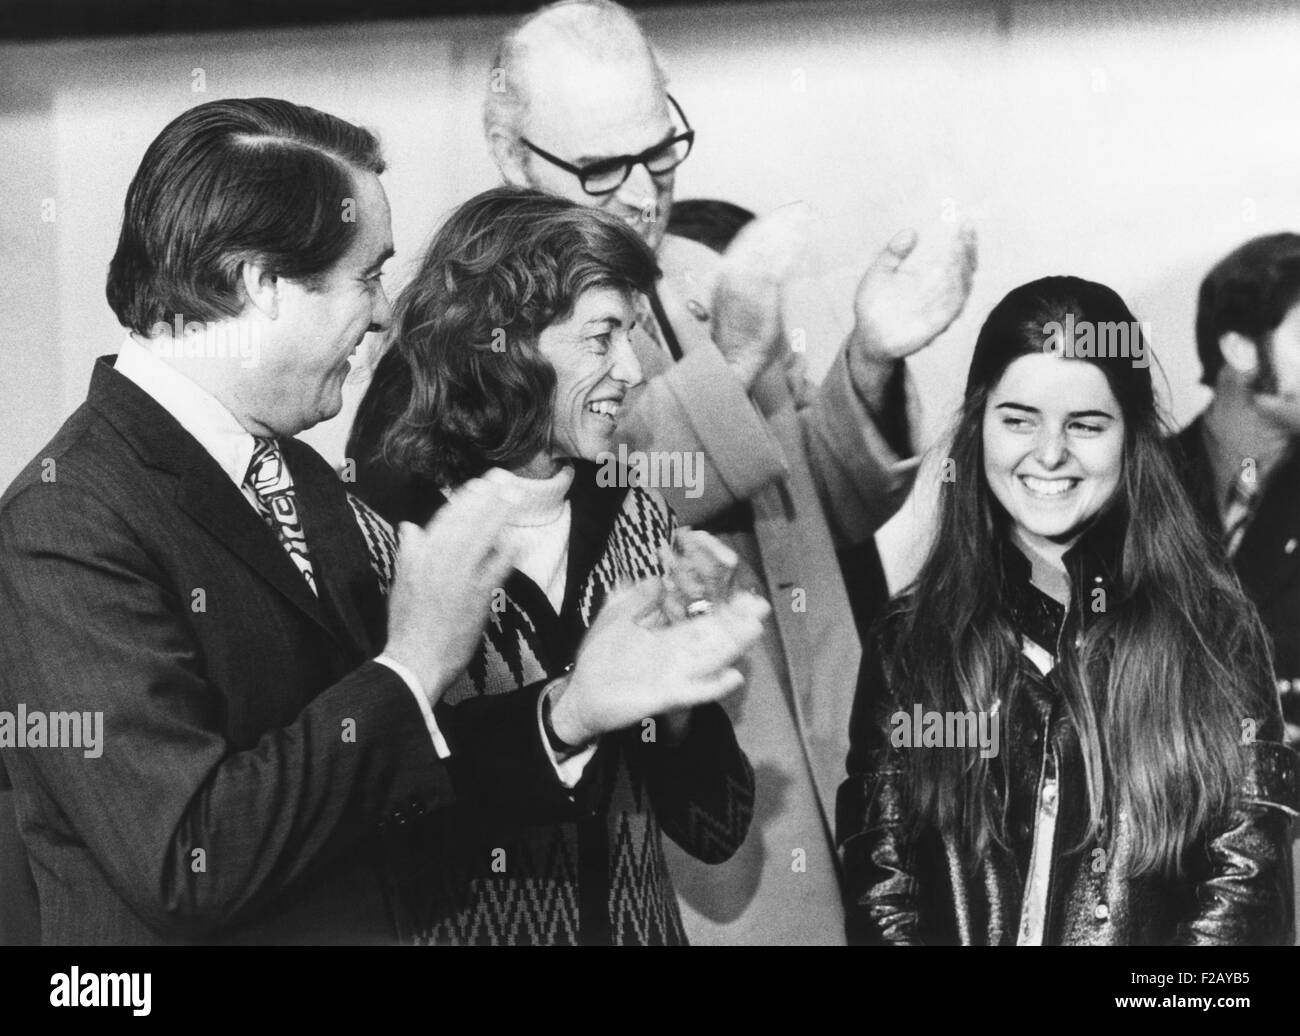 Maria Shriver receives applause on her 17th birthday, Nov. 6, 1972. She was campaigning with her father, Sargent - Stock Image